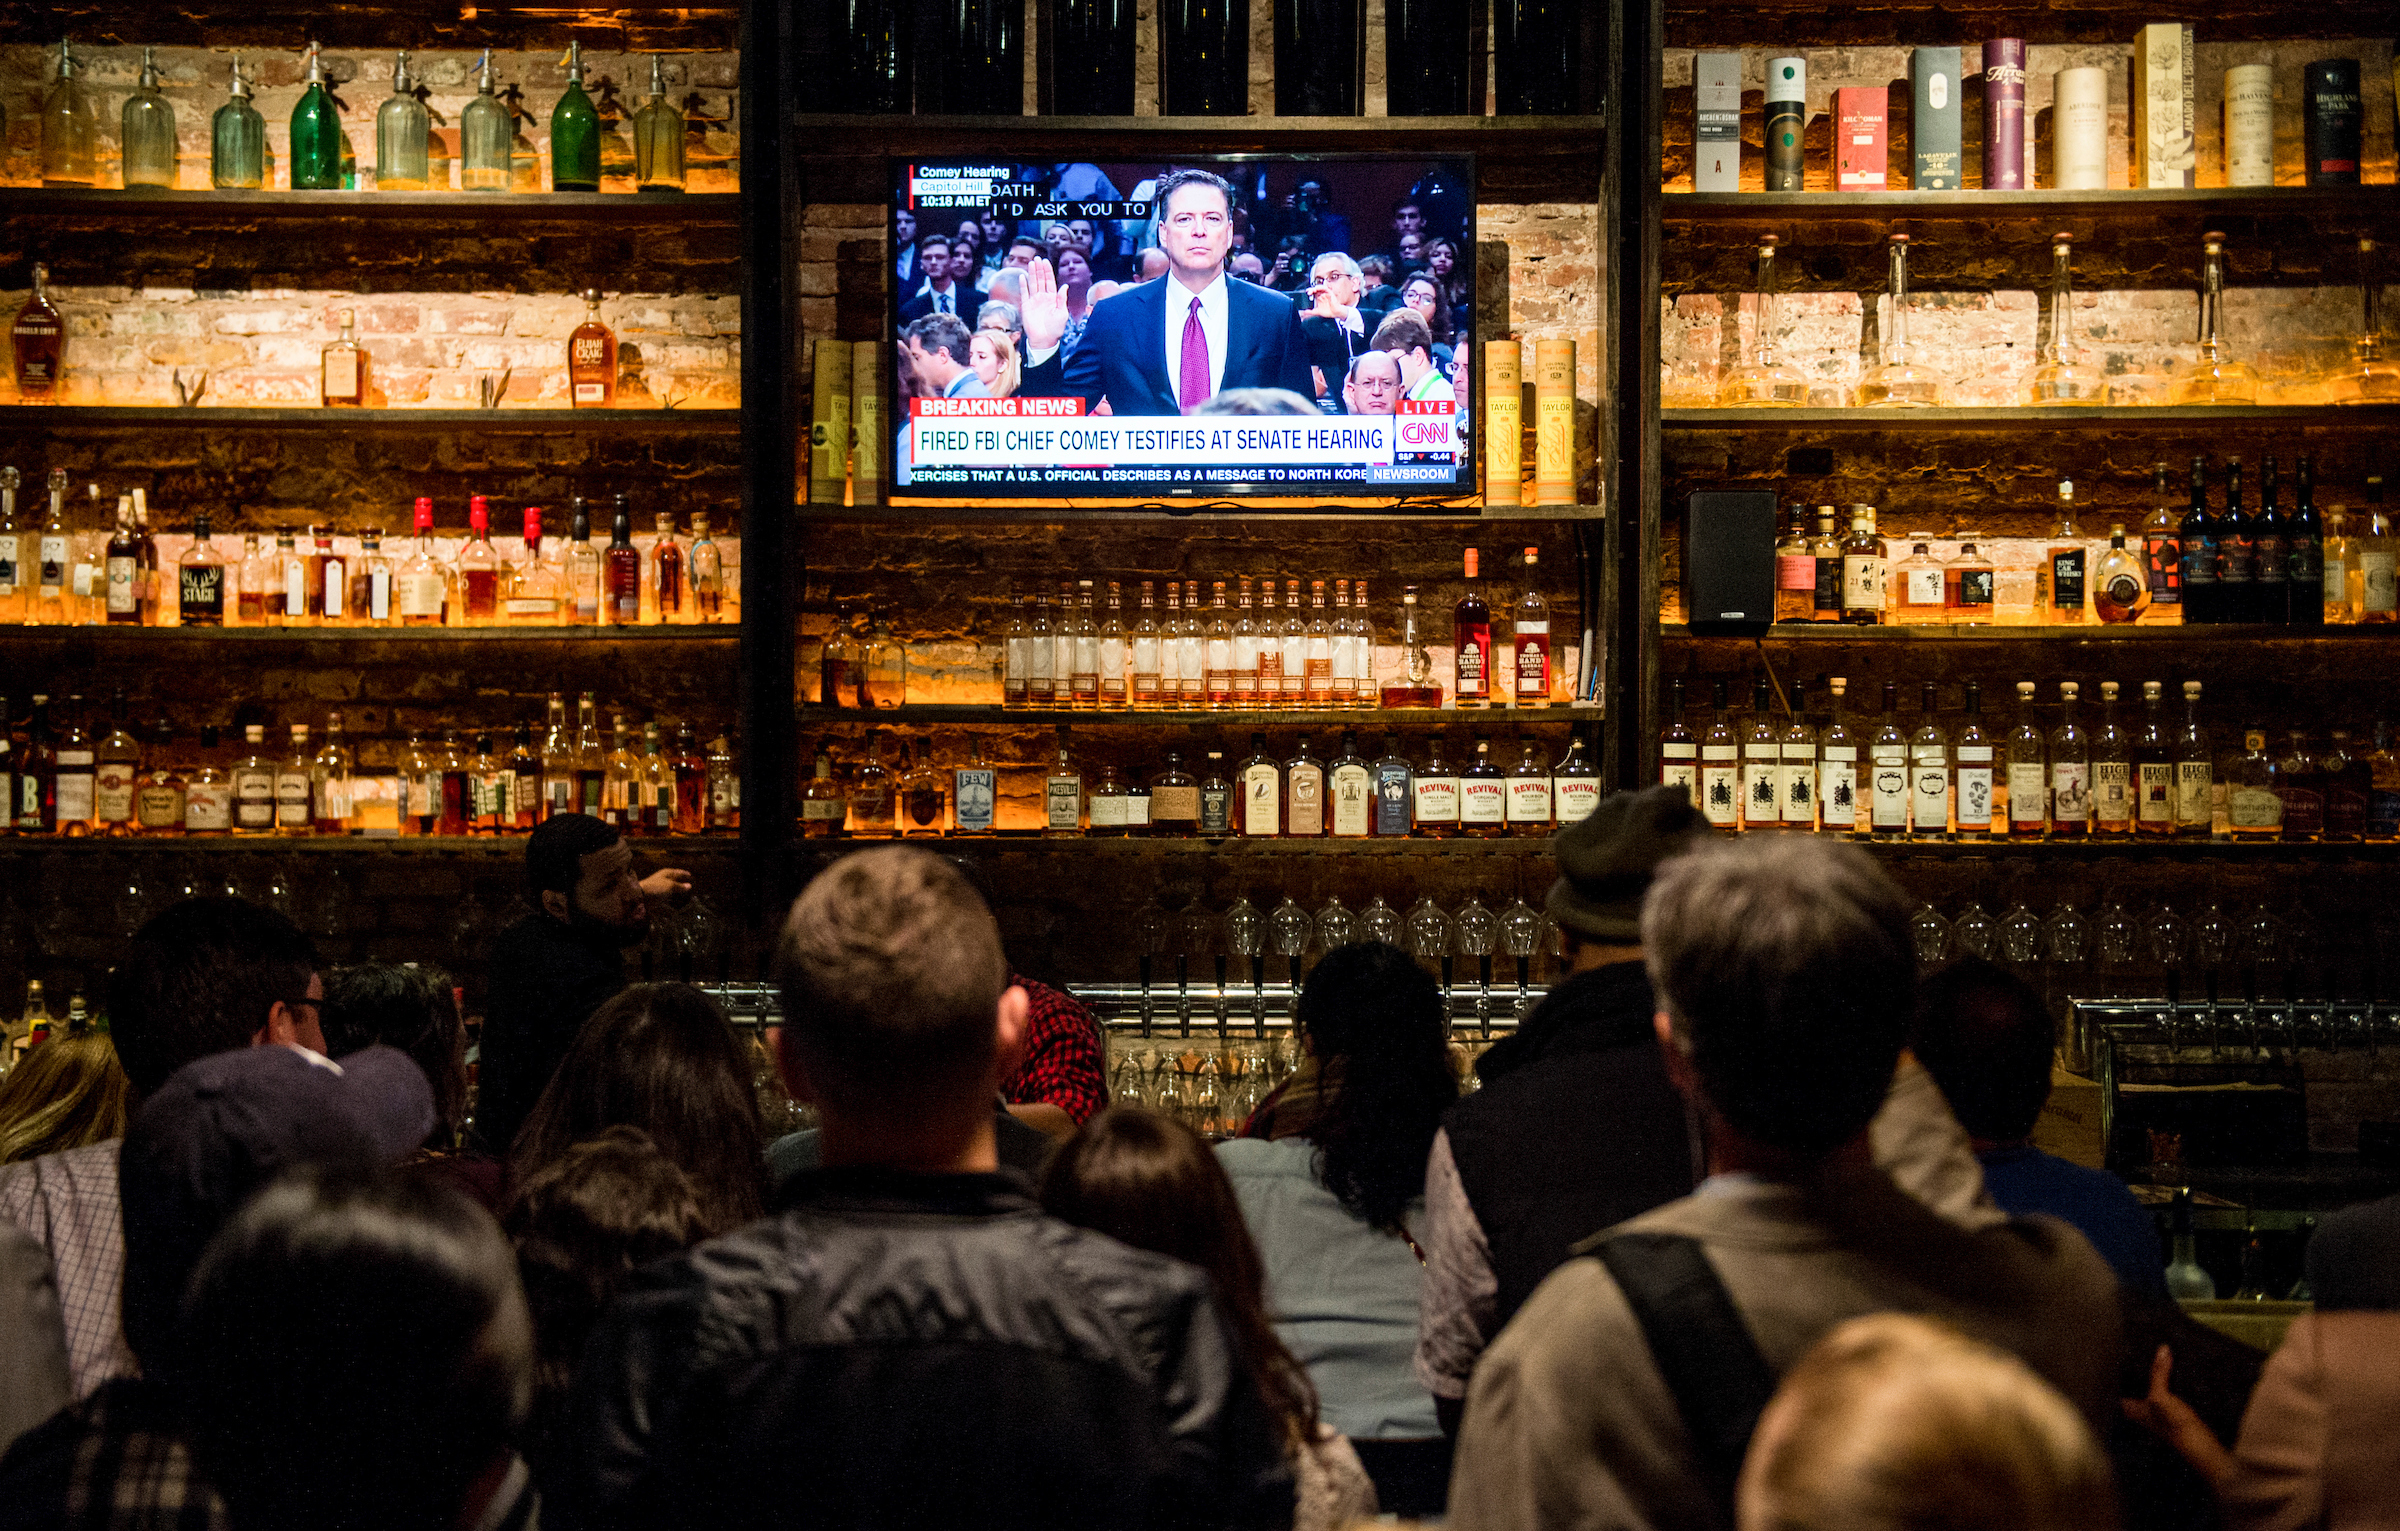 UNITED STATES - JUNE 8: The crowd gathered at The Partisan bar Comey watch party in Washington watch as former FBI Director James Comey arrives to testify during the Senate Select Intelligence Committee hearing on Thursday, June 8, 2017. (Photo By Bill Clark/CQ Roll Call)